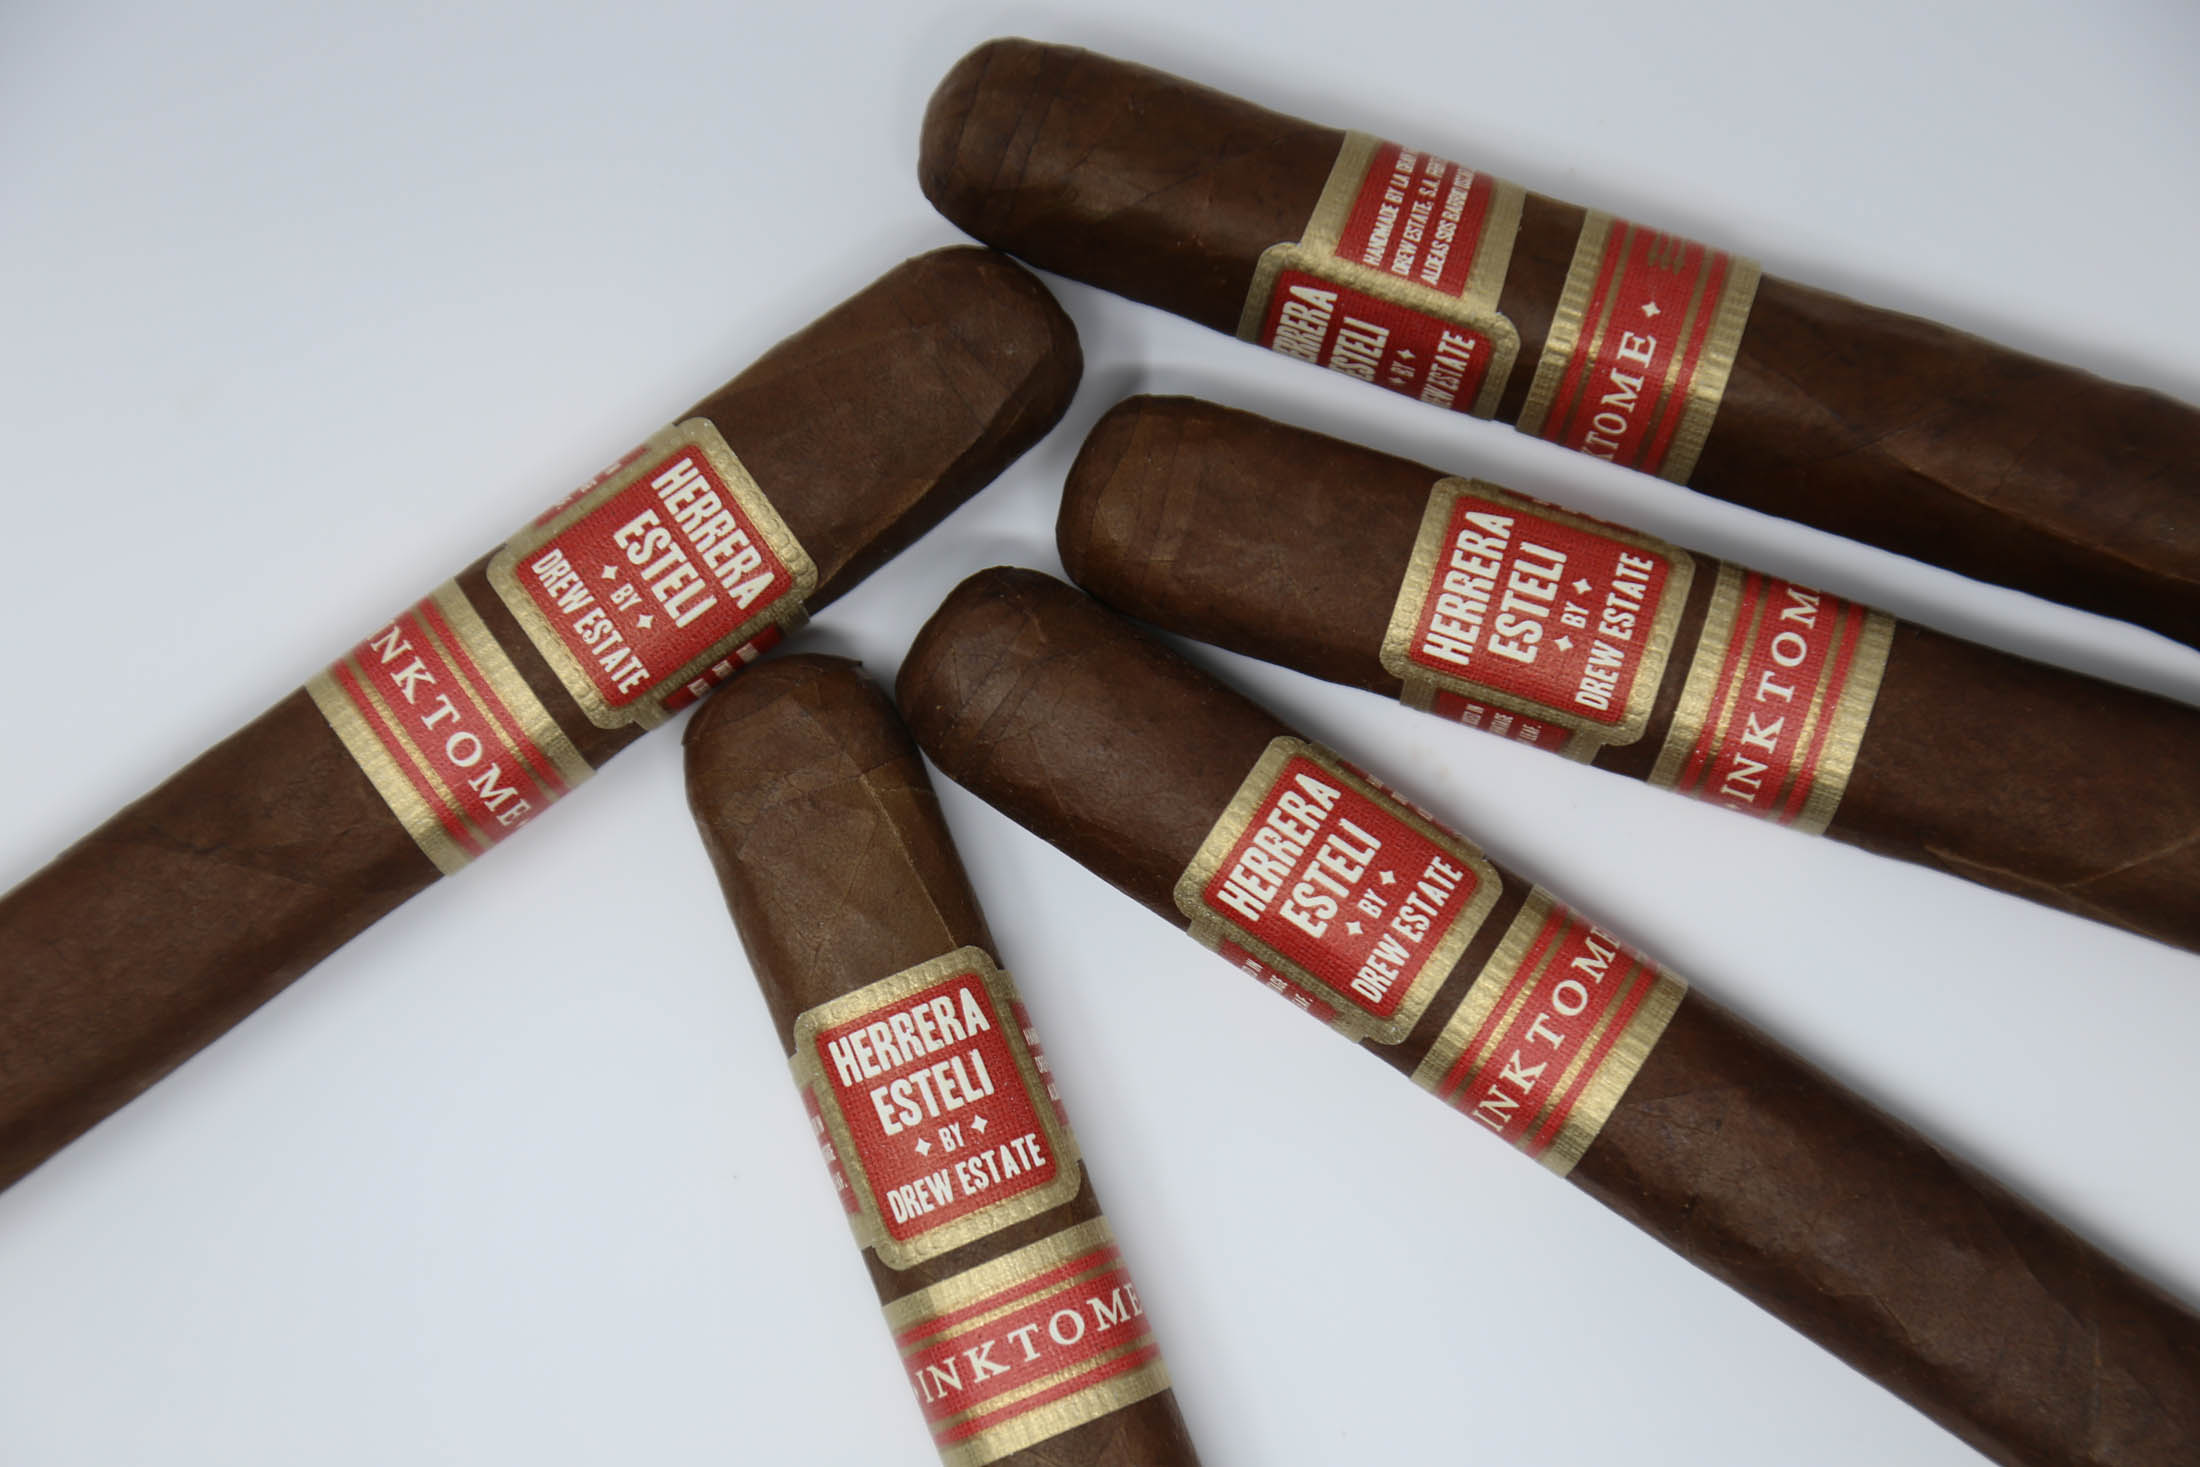 Cigar News: Drew Estate Announces Herrera Estelí Inktome With SmallBatchCigar.com